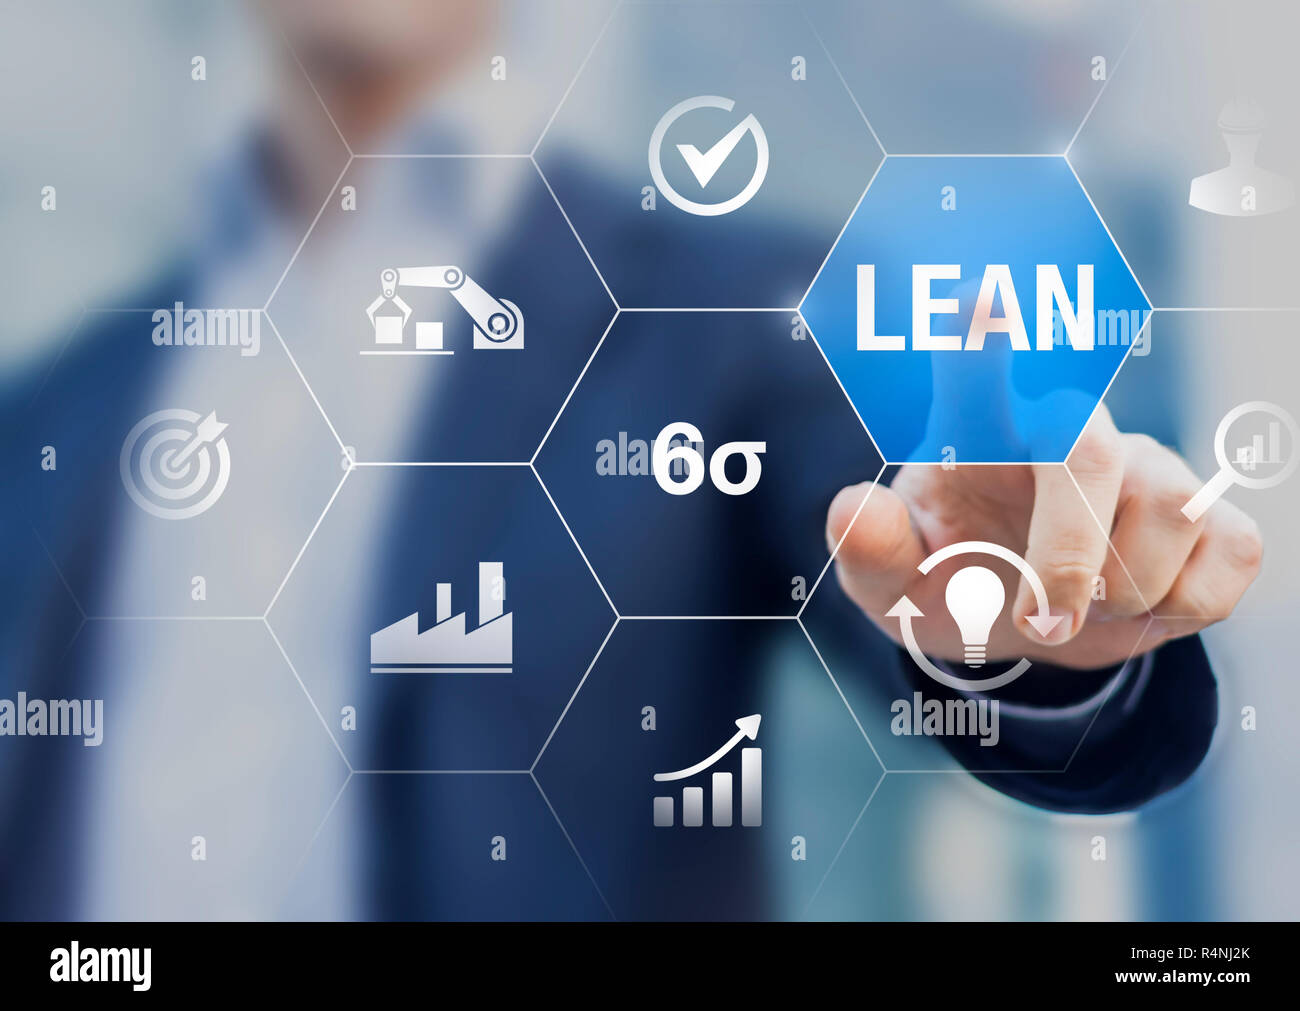 Lean manufacturing and six sigma management and quality standard in industry, continuous improvement, reduce waste, improve productivity and efficienc - Stock Image